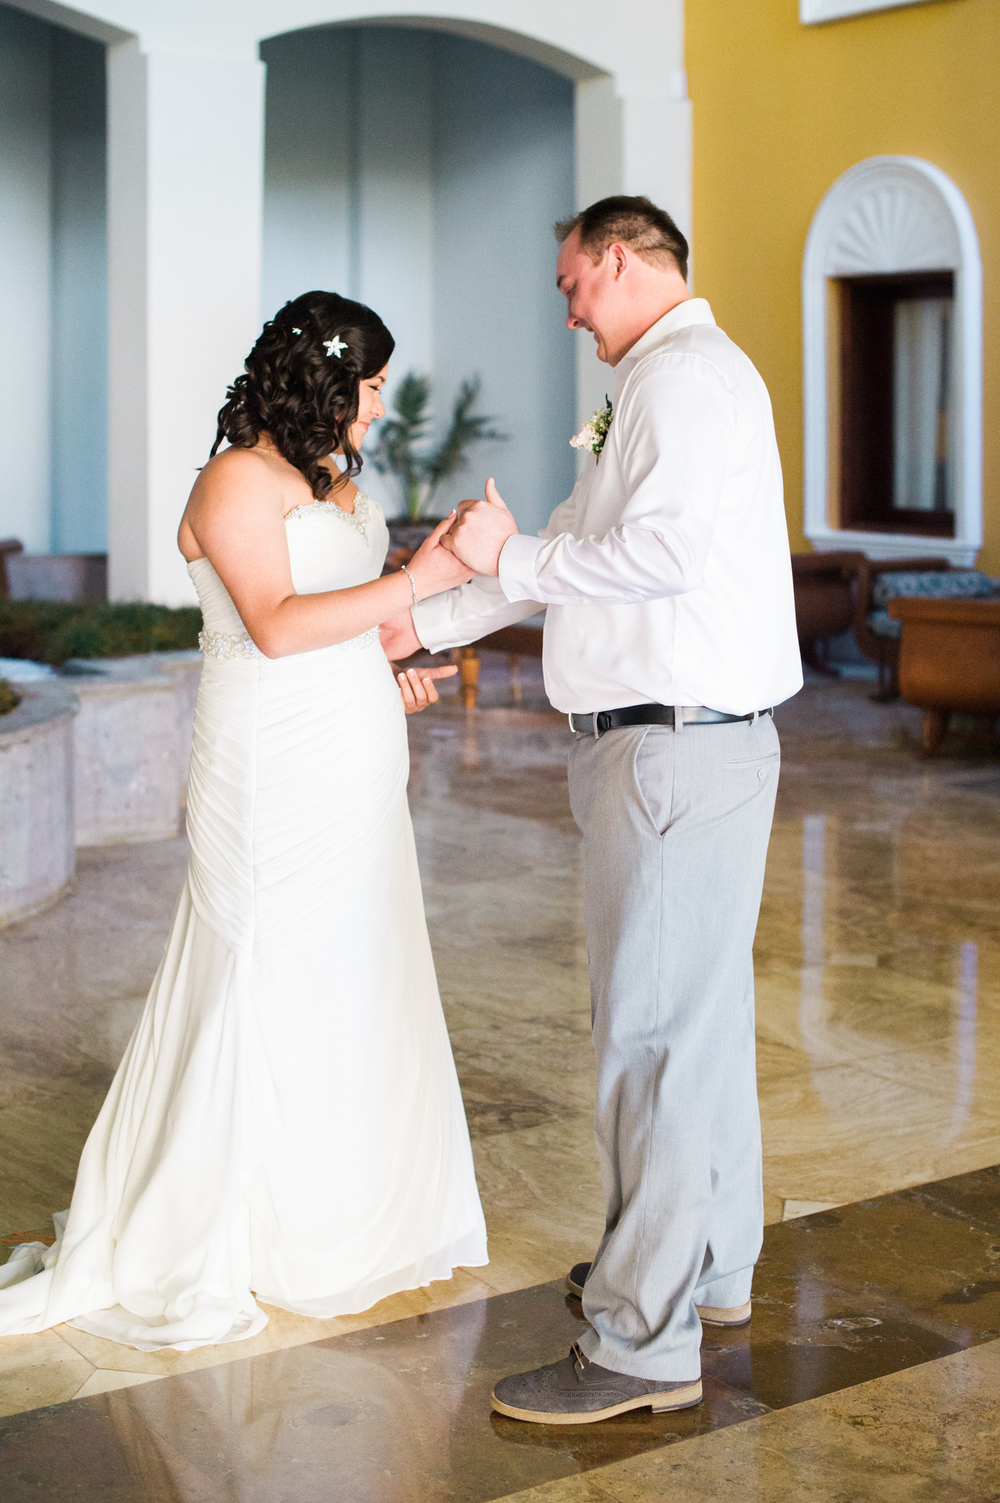 JadeandRyan-Montego-Bay-Jamaica-Wedding-Iberostar-Resort-Beach-30.jpg